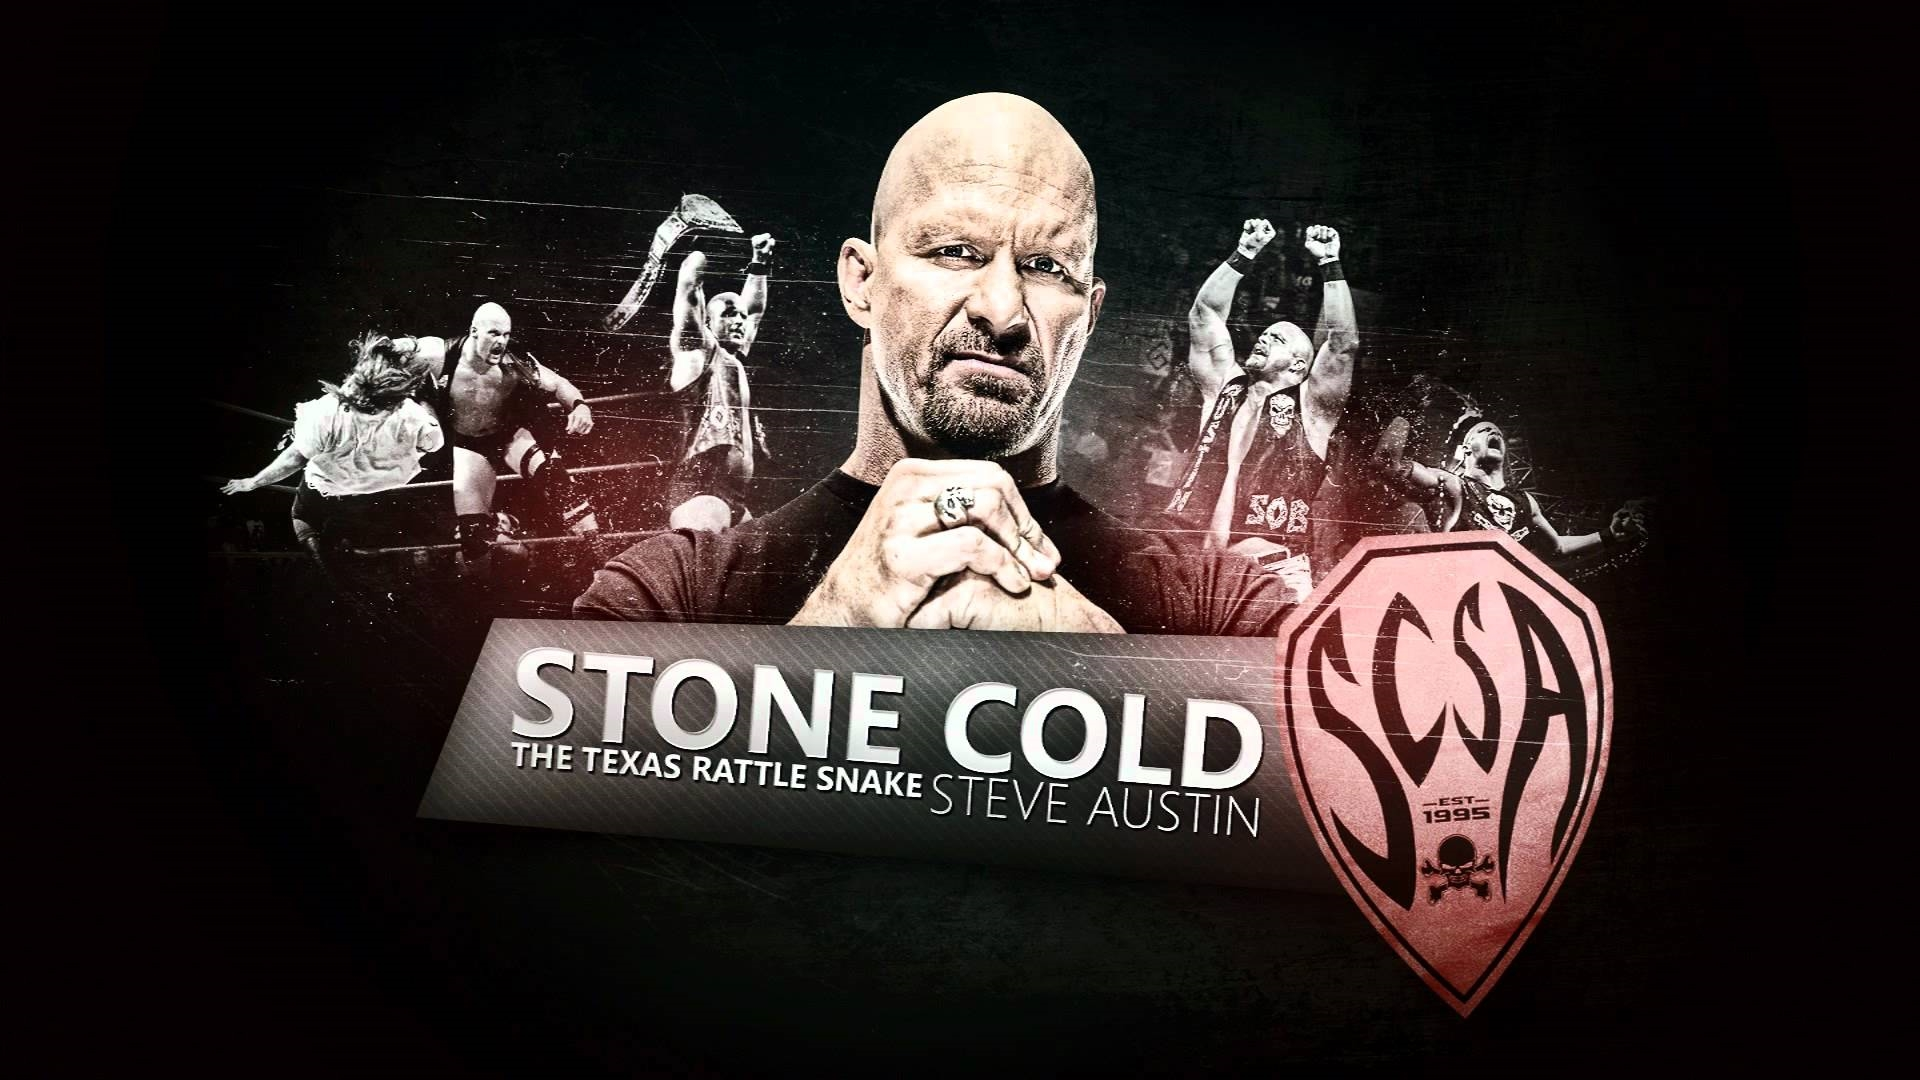 stone cold steve austin 3 16 texas rattle snake wwe hd